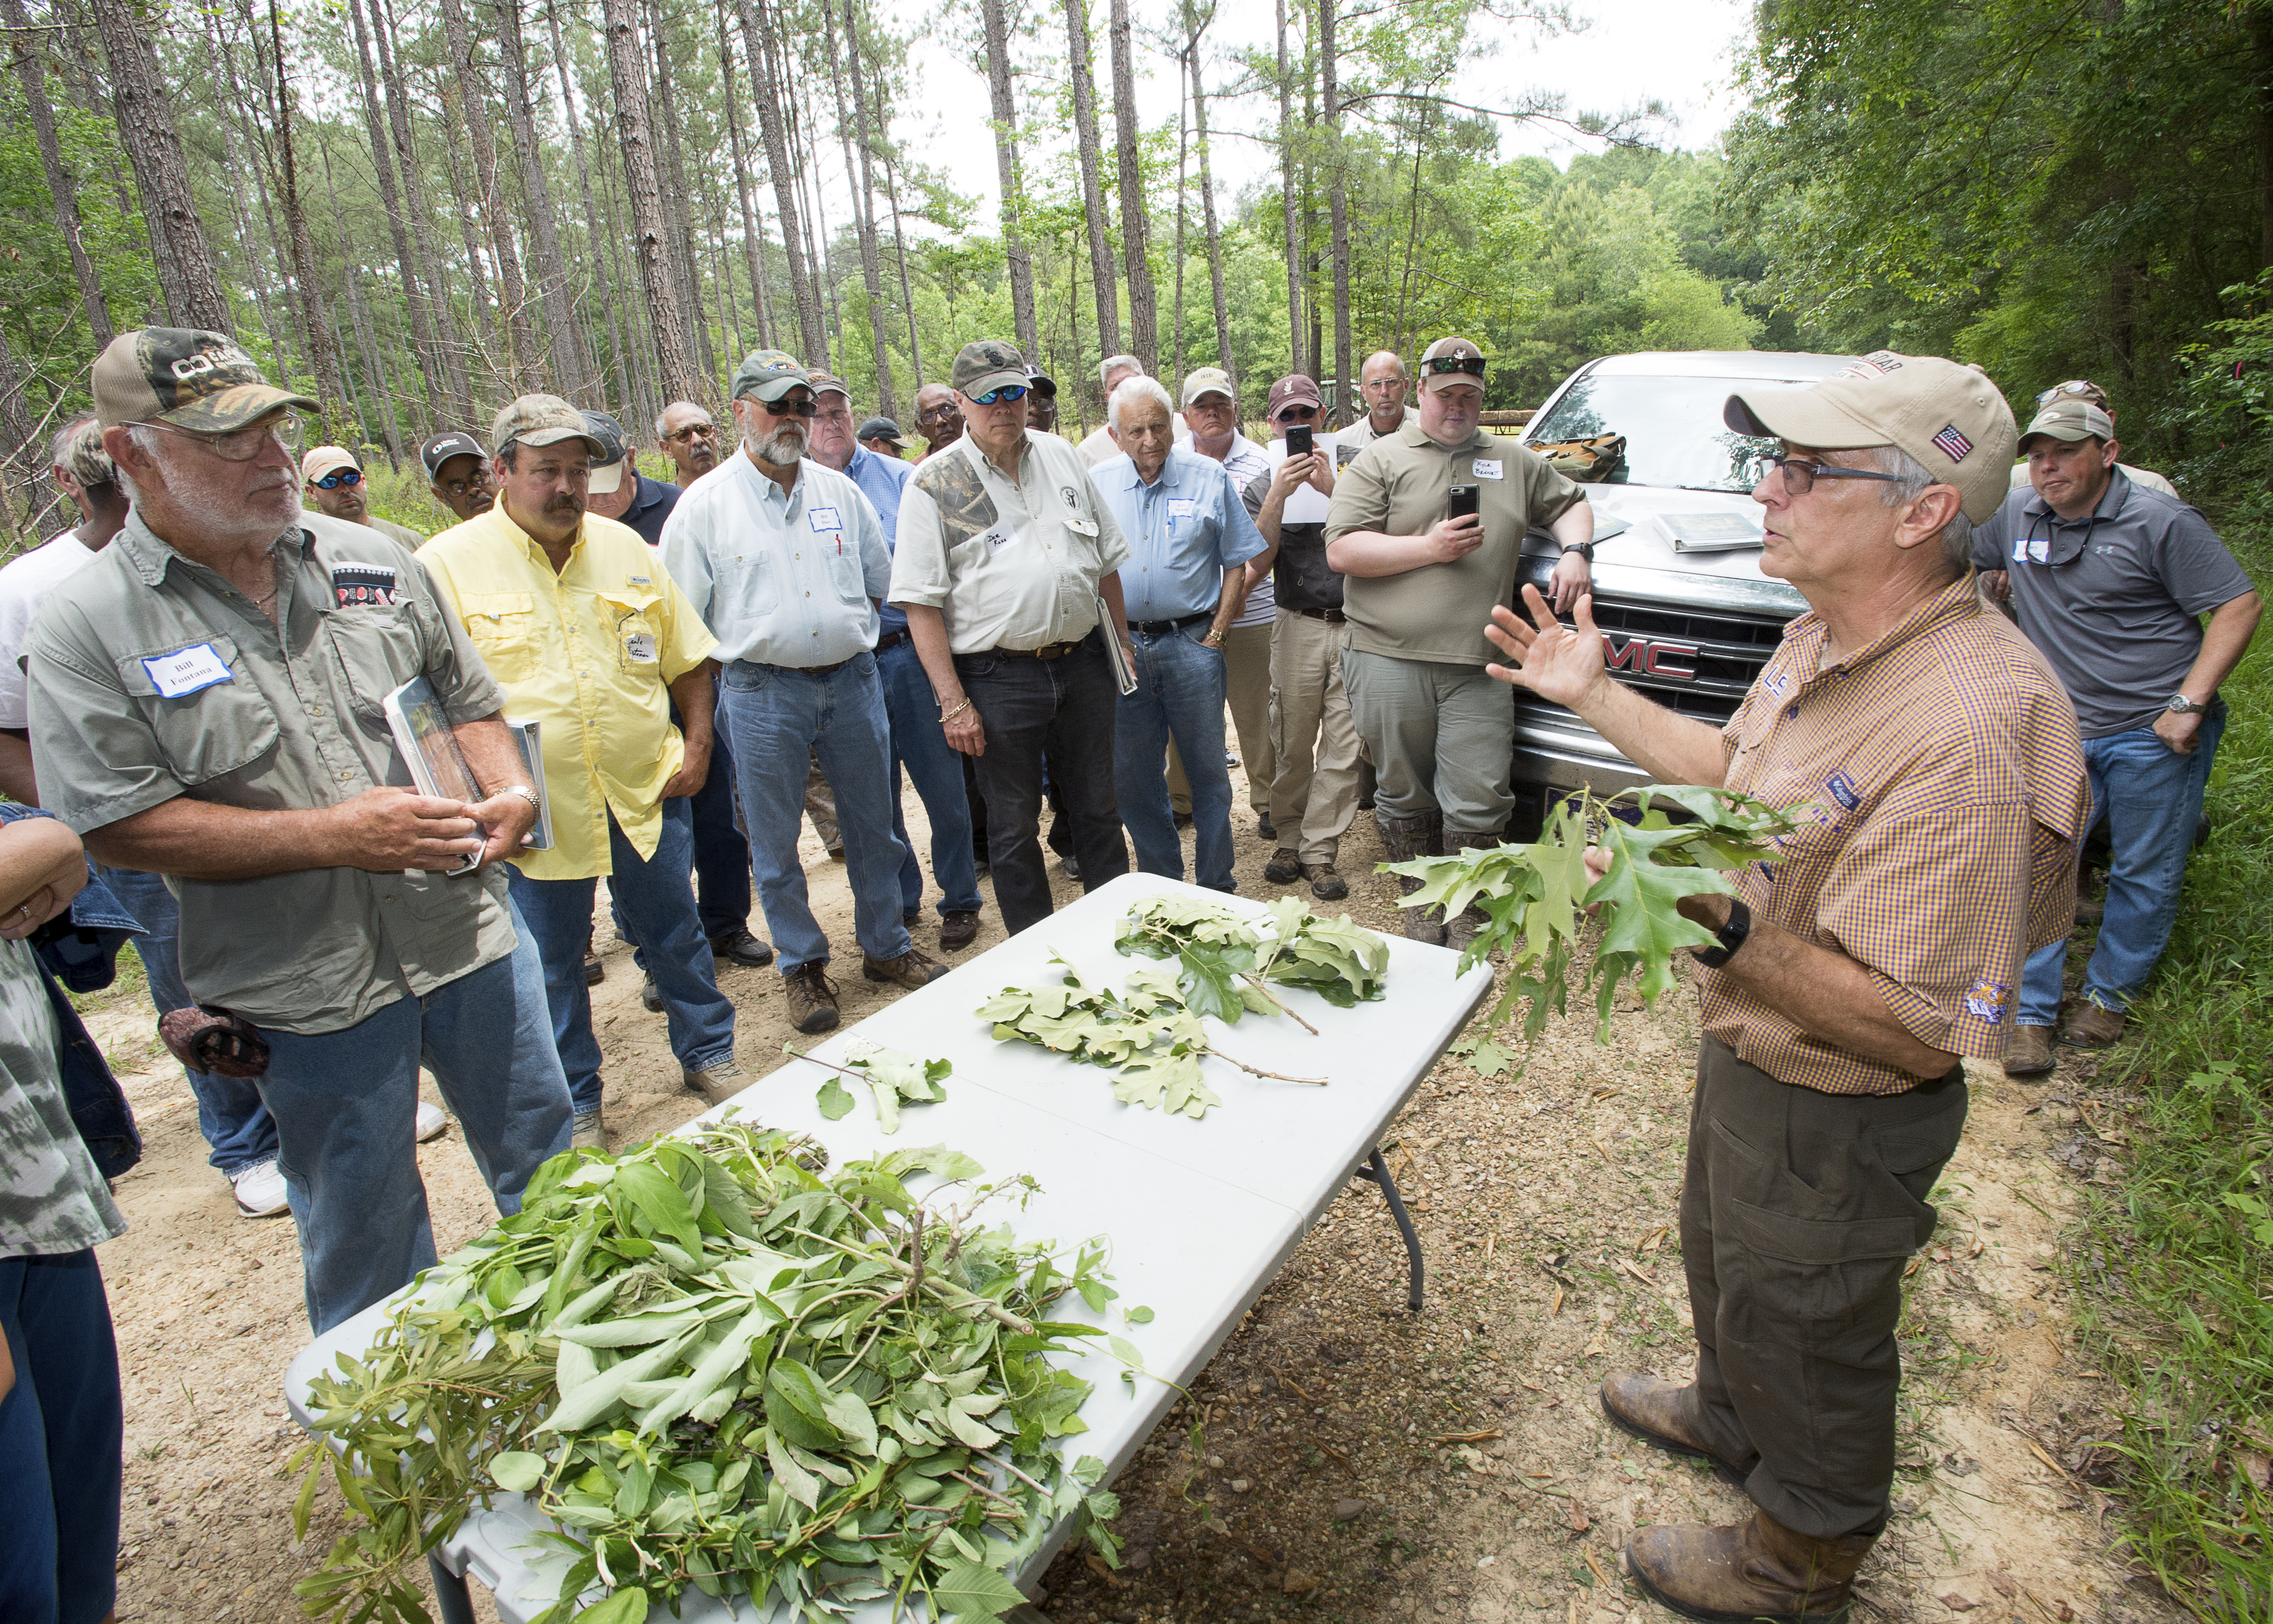 Field day features wildlife management information